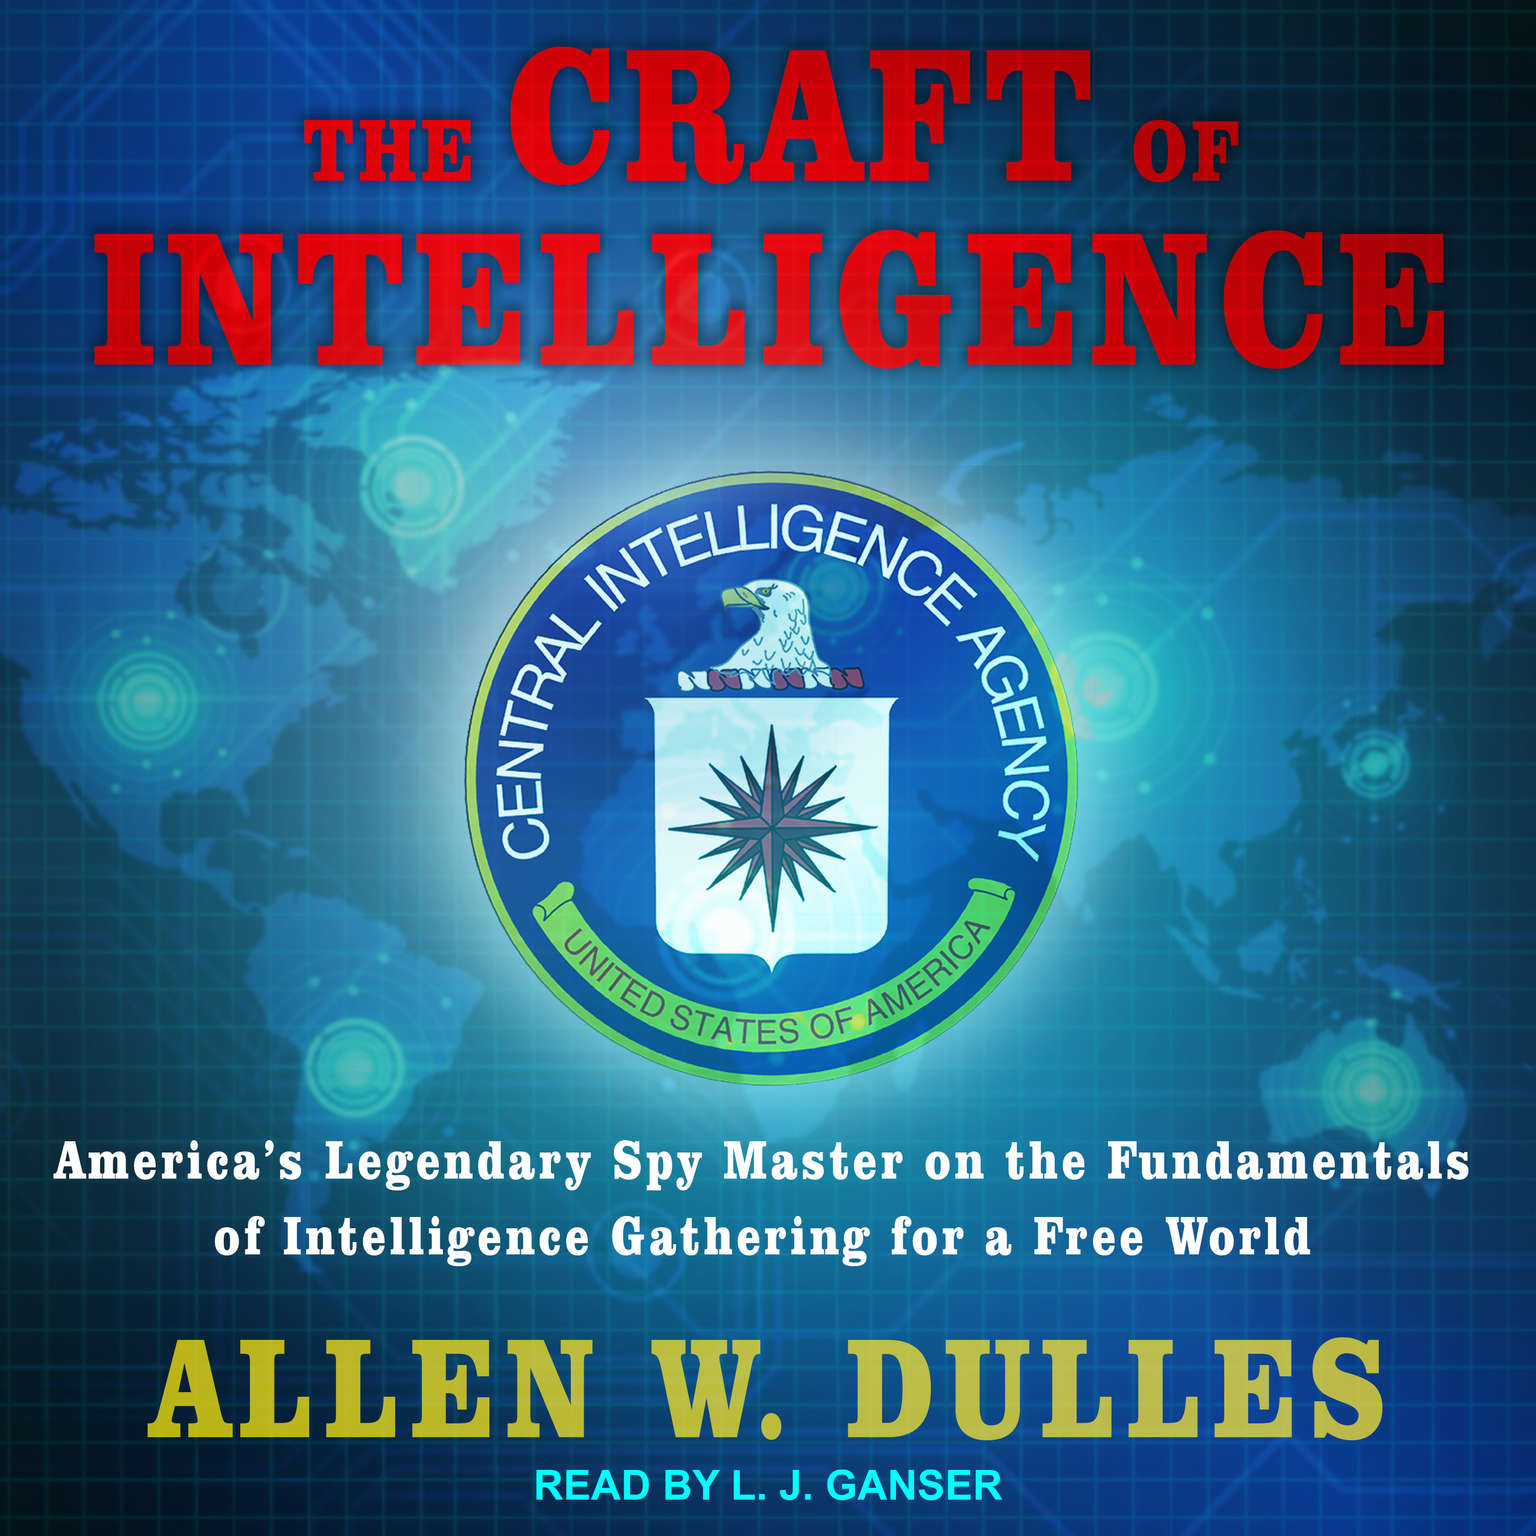 The Craft of Intelligence: Americas Legendary Spy Master on the Fundamentals of Intelligence Gathering for a Free World Audiobook, by Allen W. Dulles